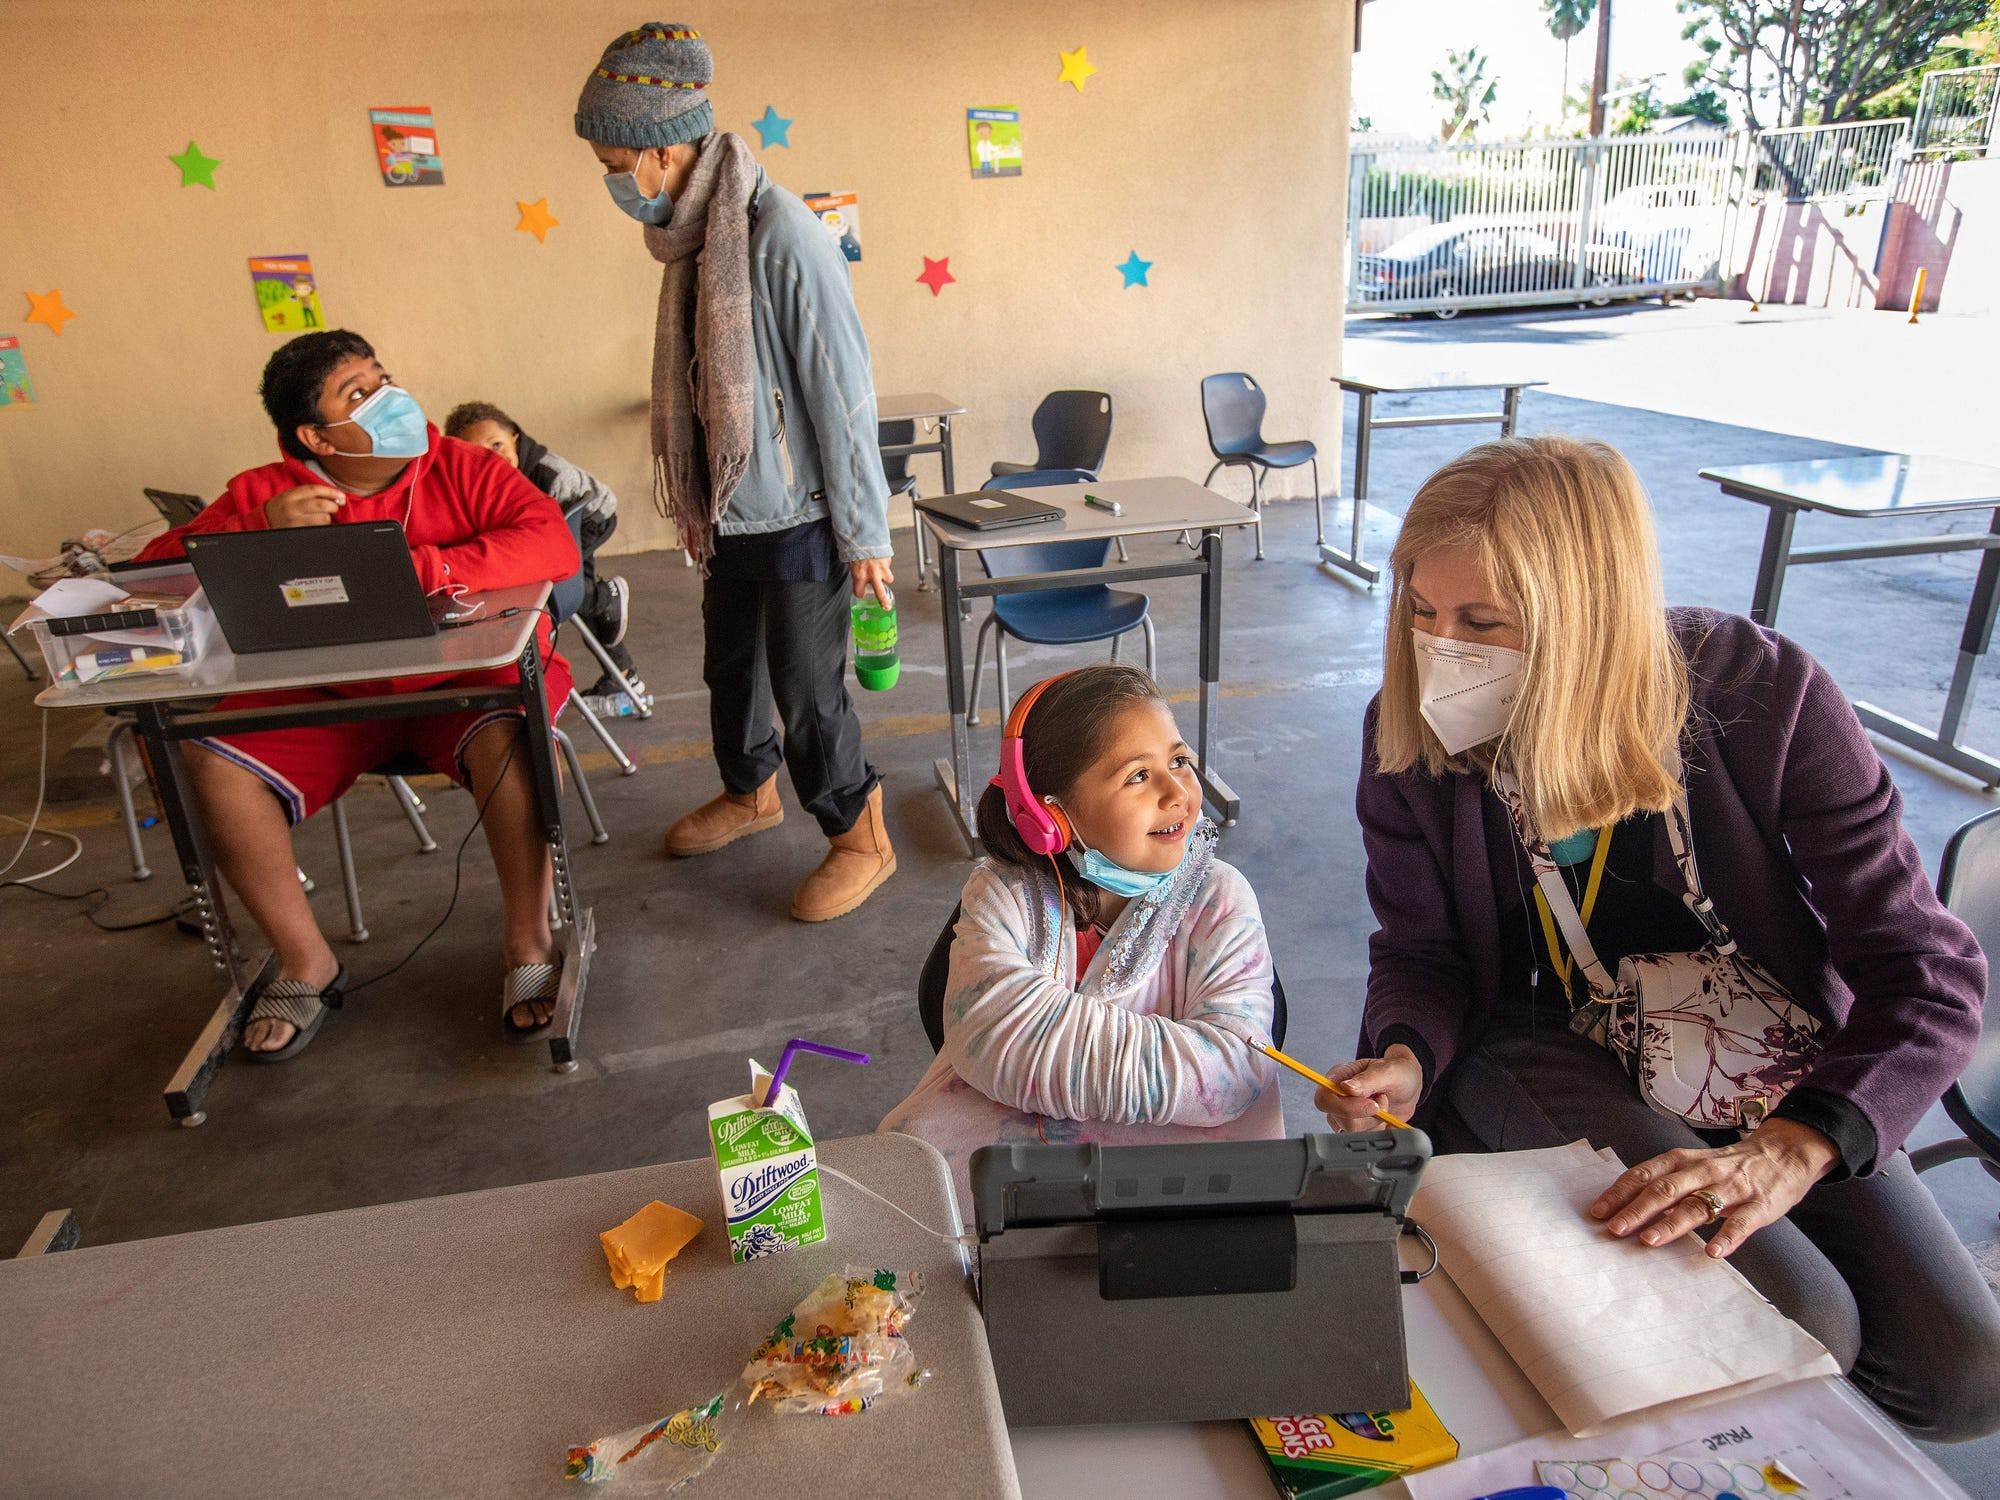 Volunteers help students at a learning pod for homeless children in California.